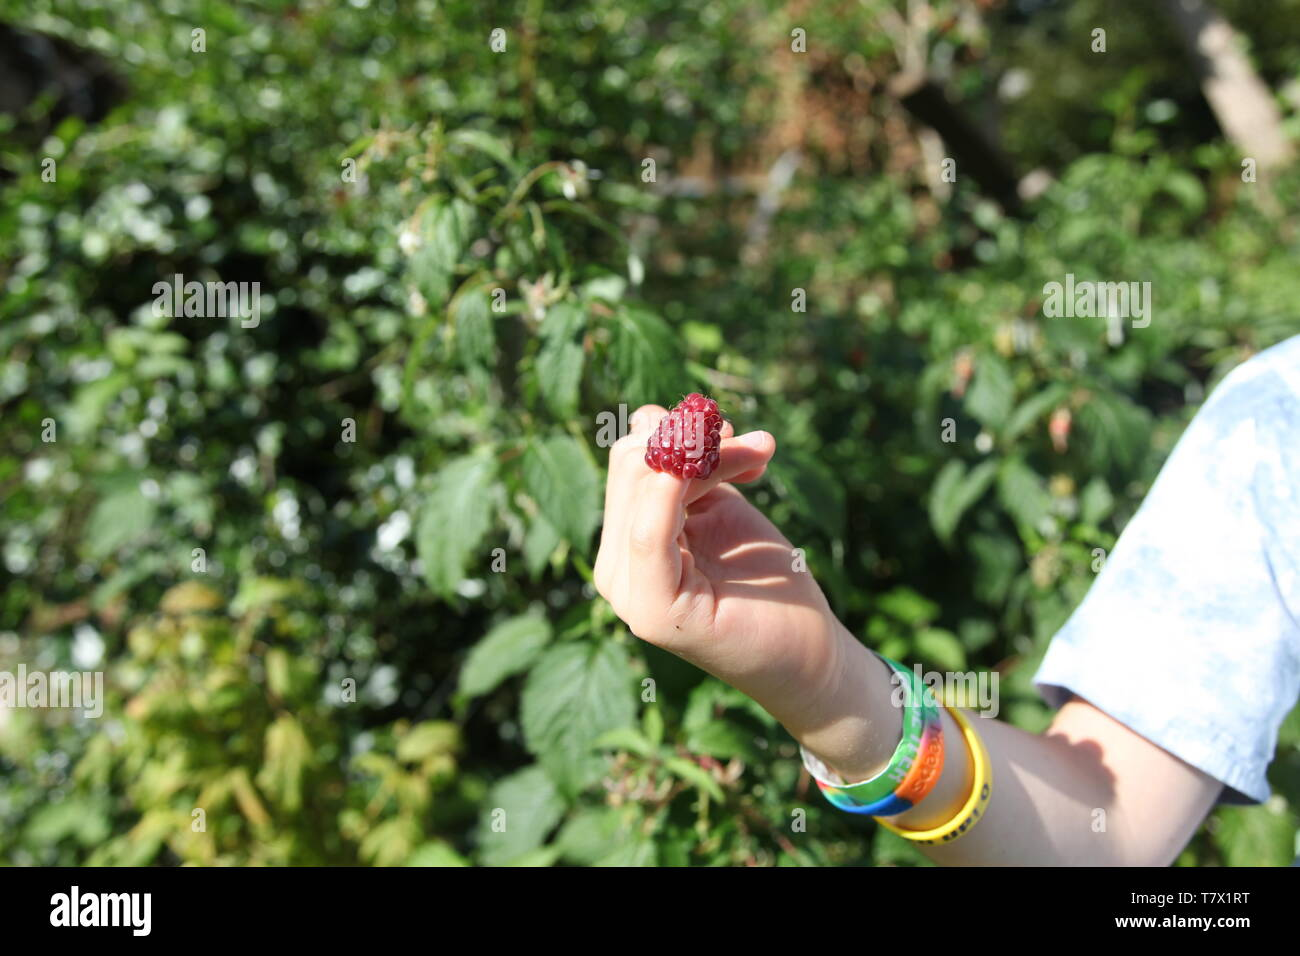 English, red, ripe Raspberry on a child's fingertip in a summer garden during daytime - Stock Image